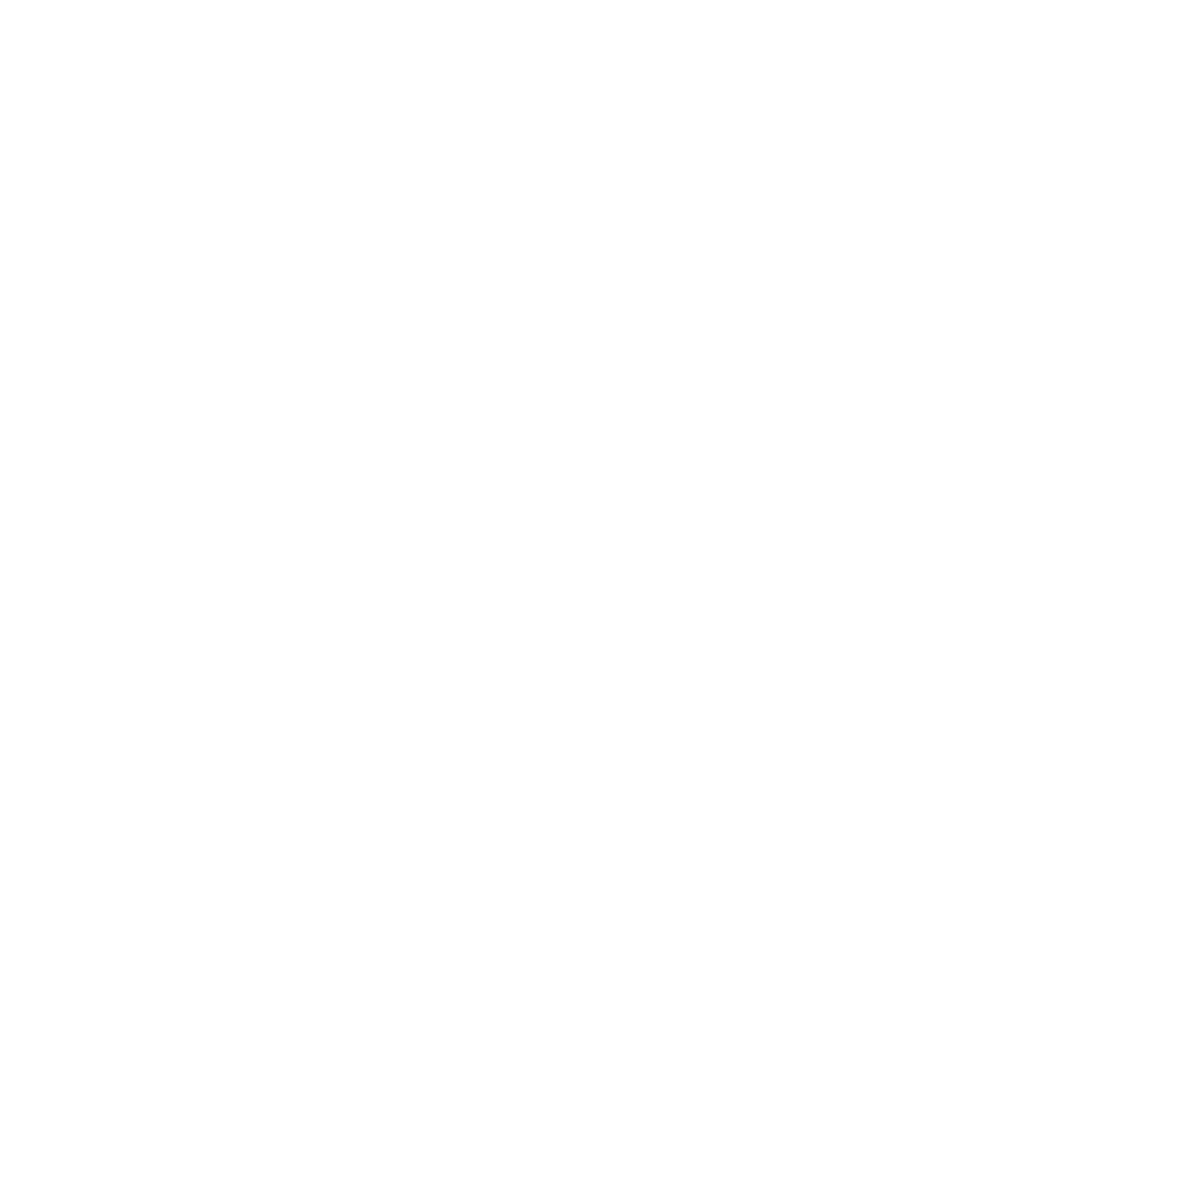 Redeeming Cross Community Church, Richfield, MN